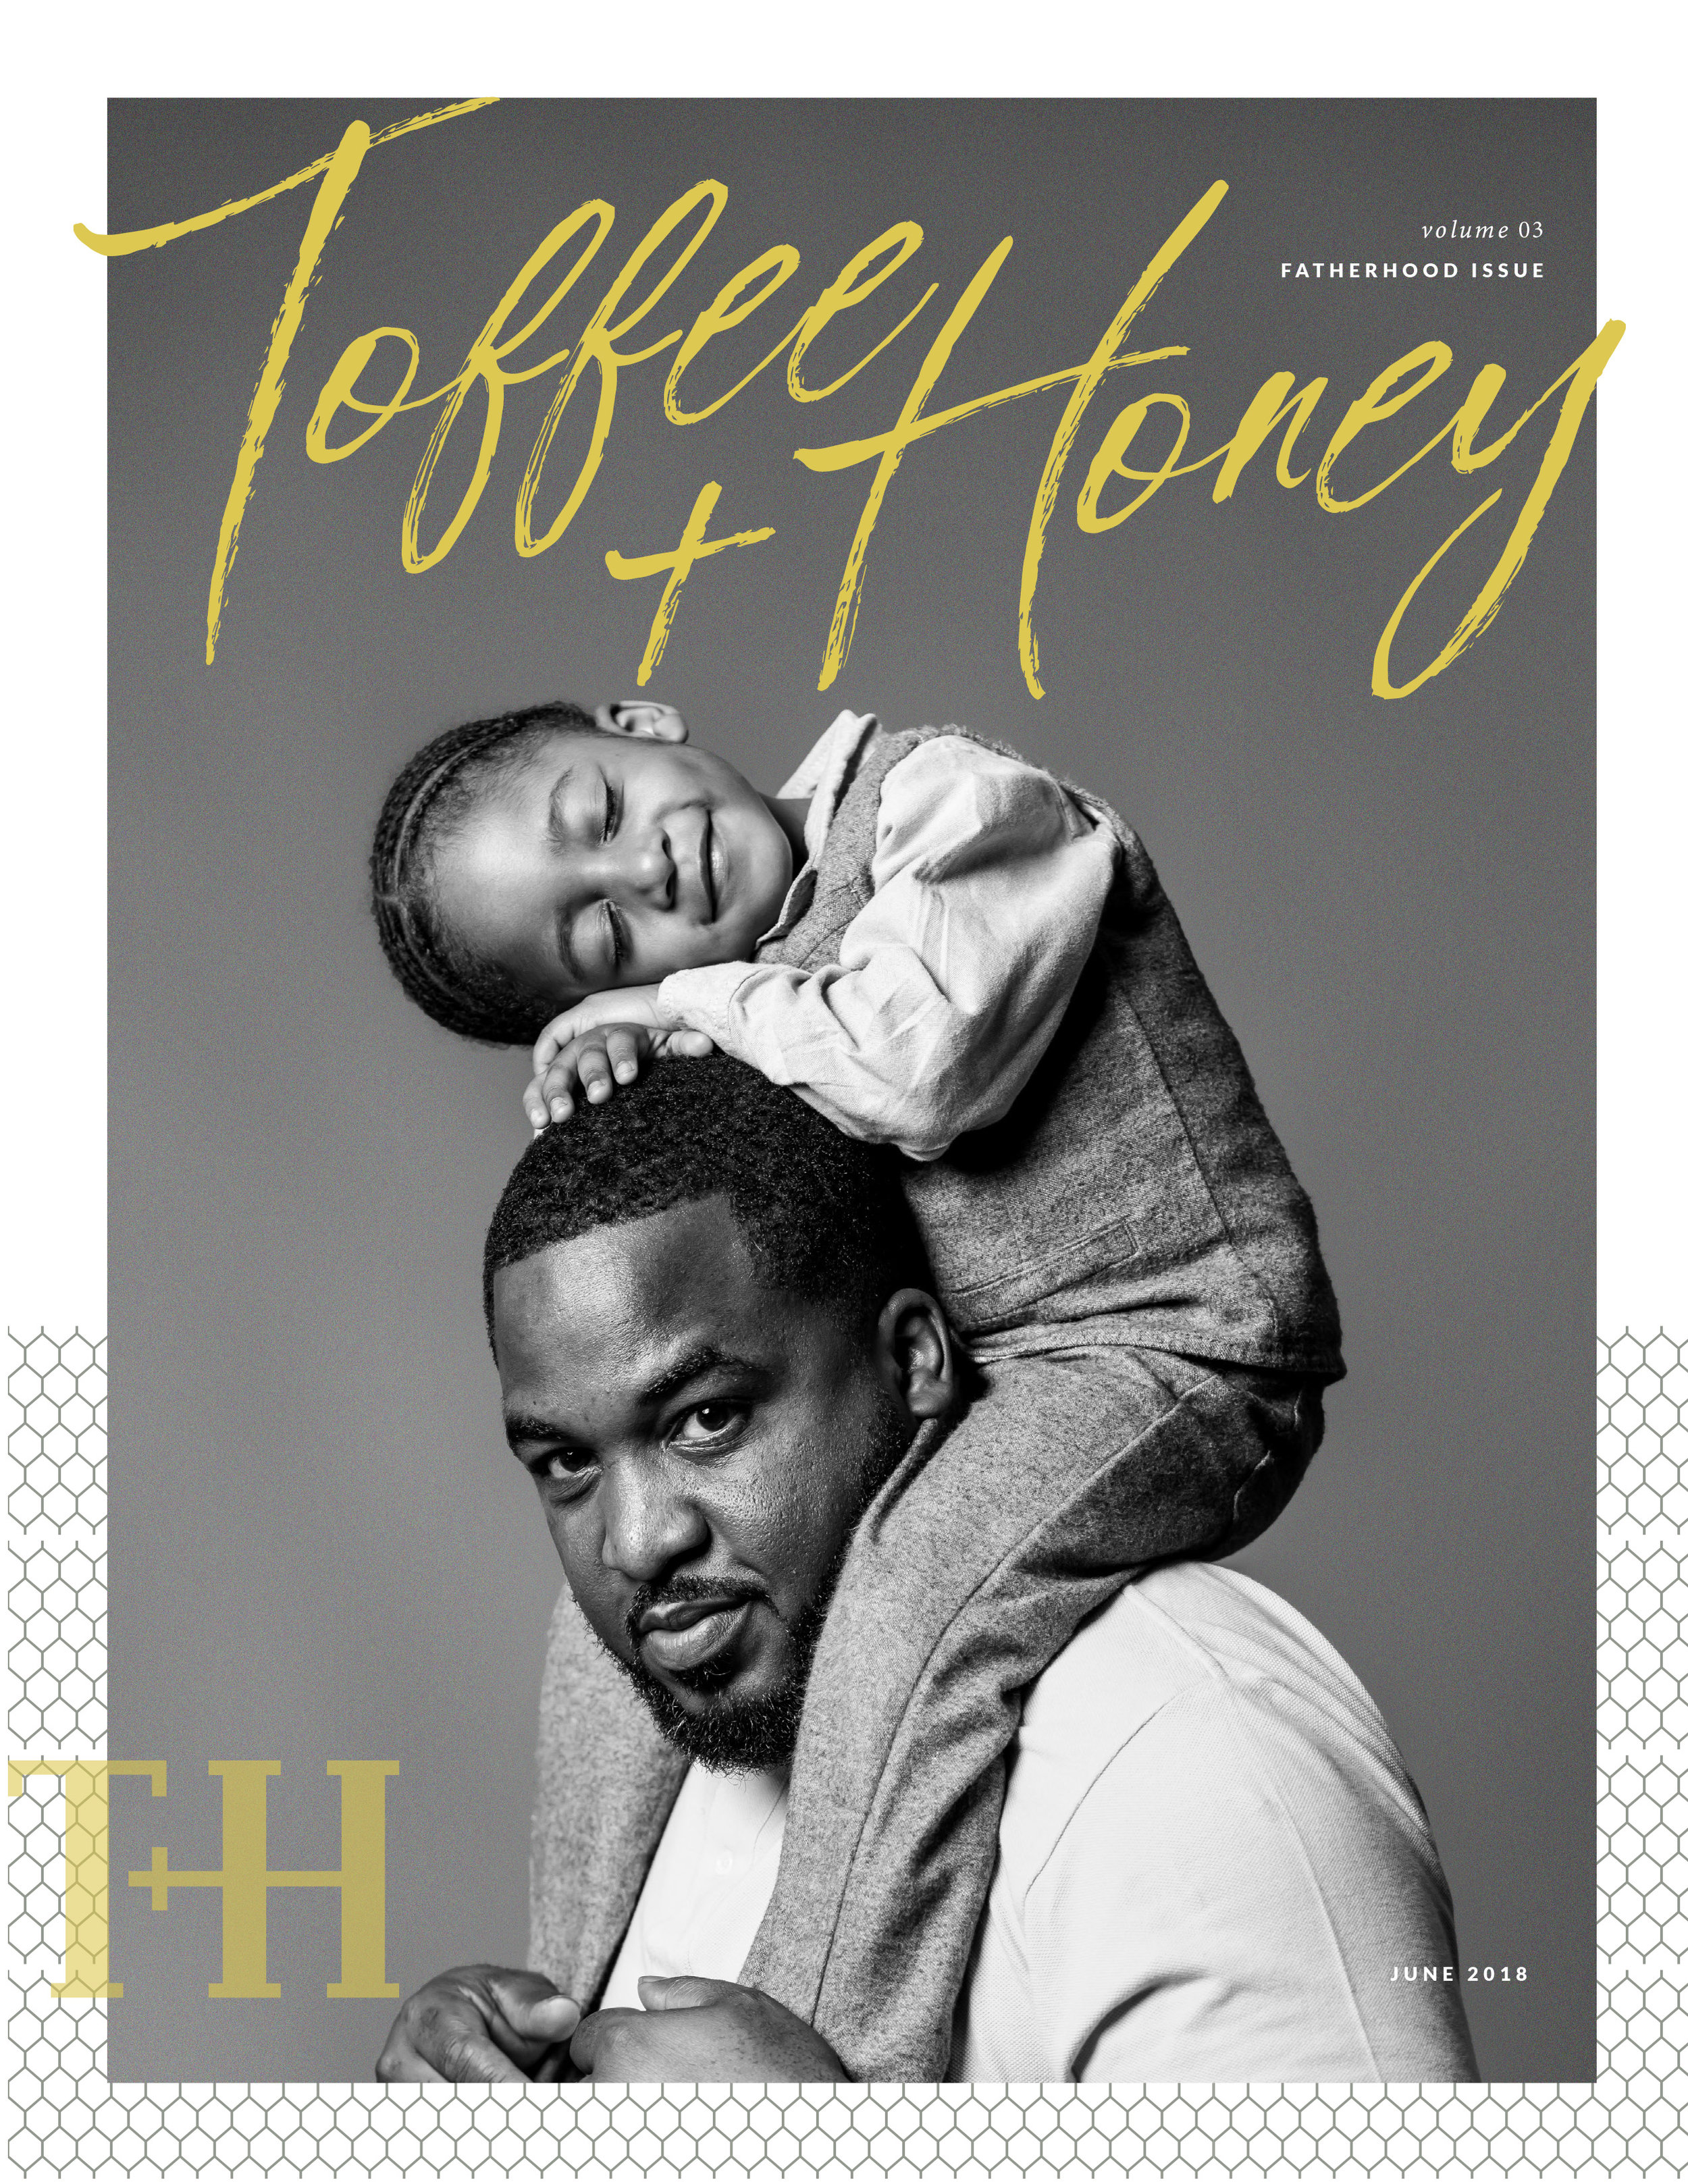 03 June 2018 Toffee Honey Fatherhood.jpg